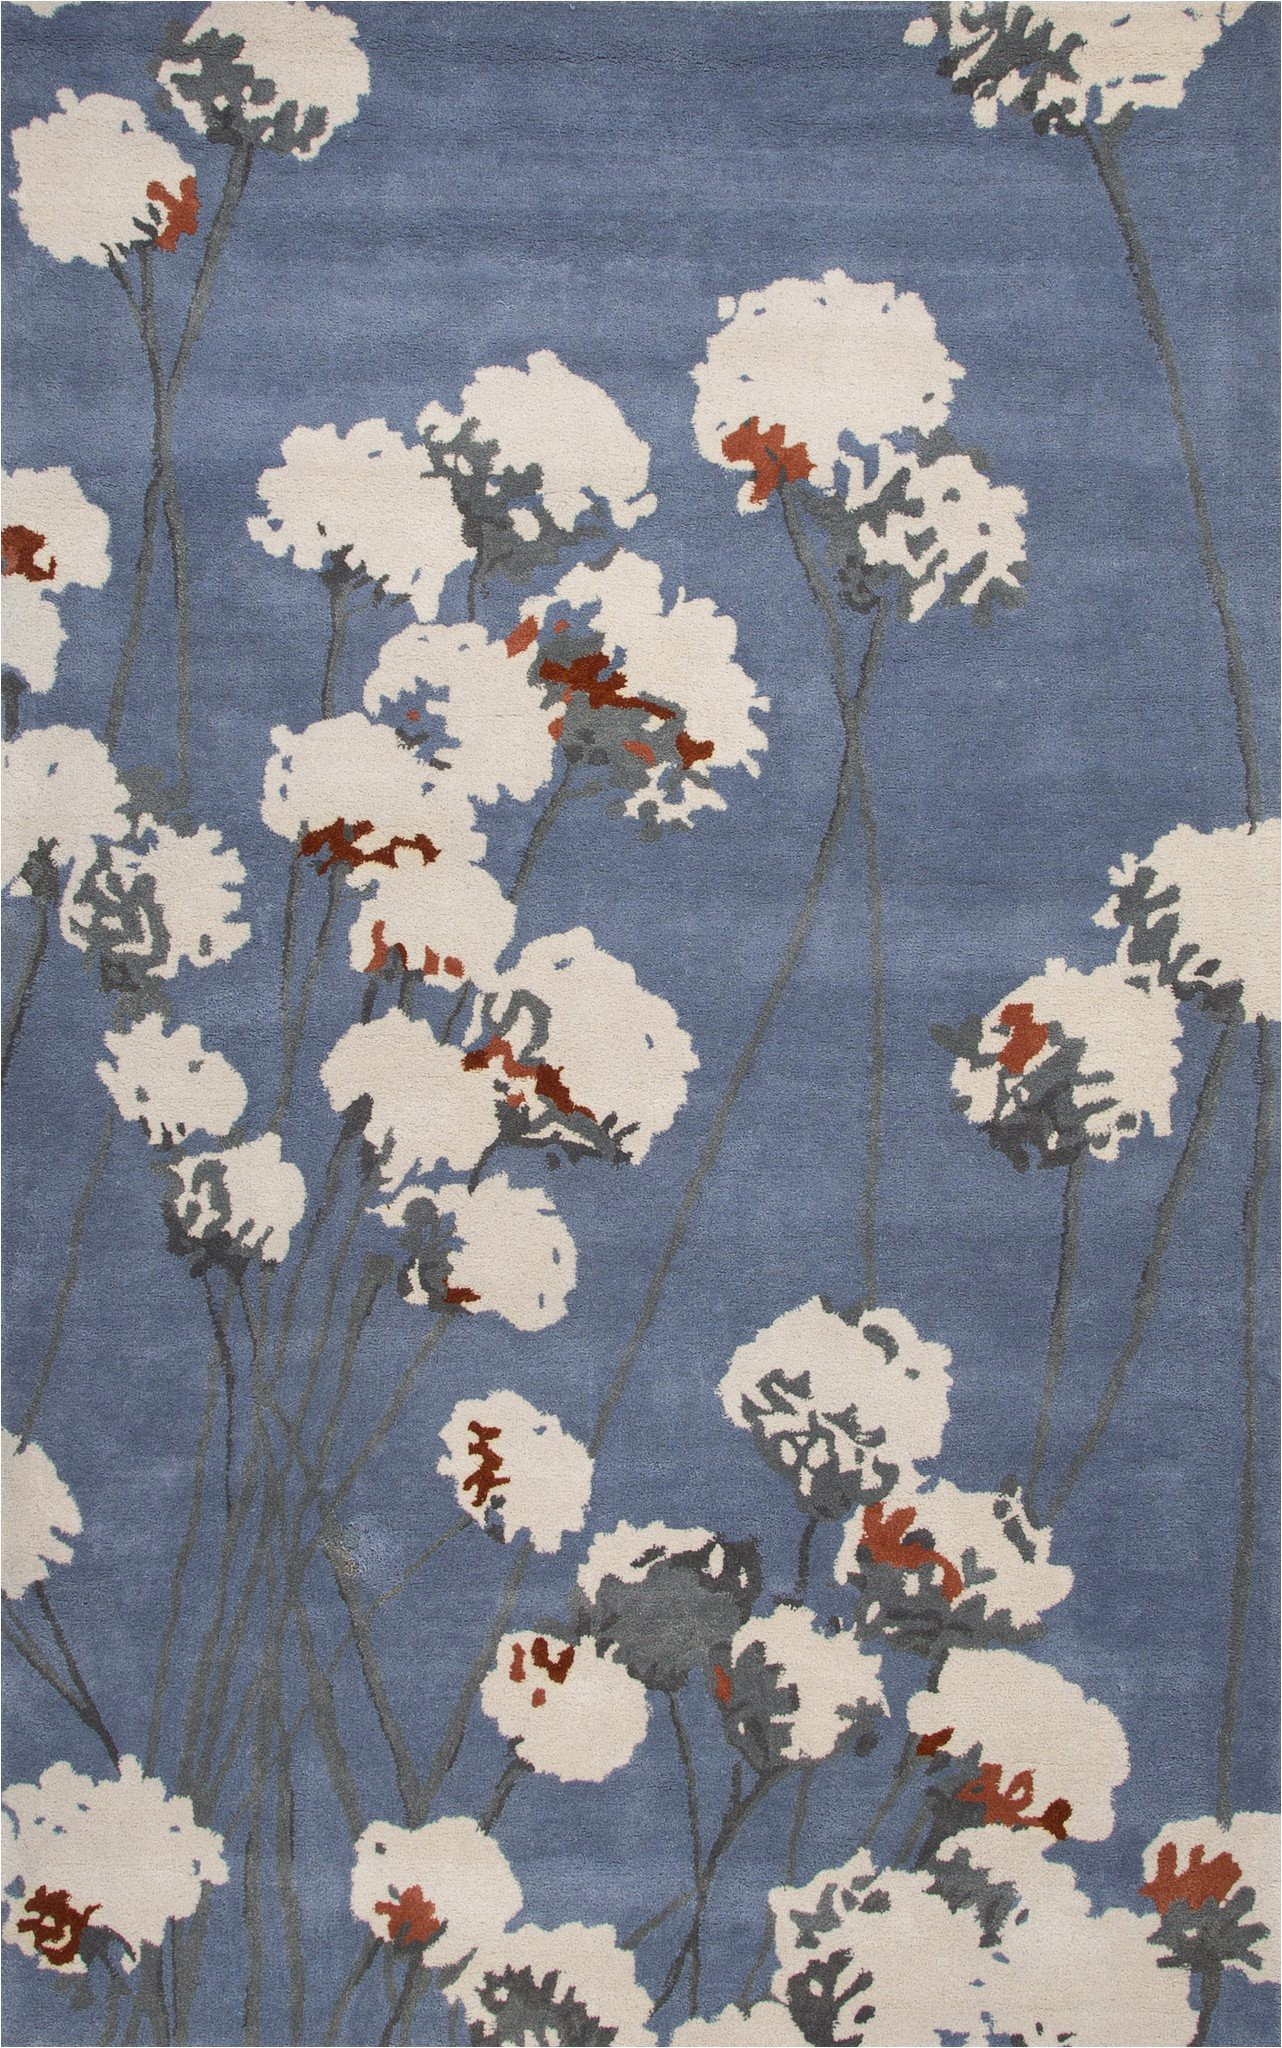 jaipur rugs modern floral pattern blue ivory wool area rug lst32 rectangle